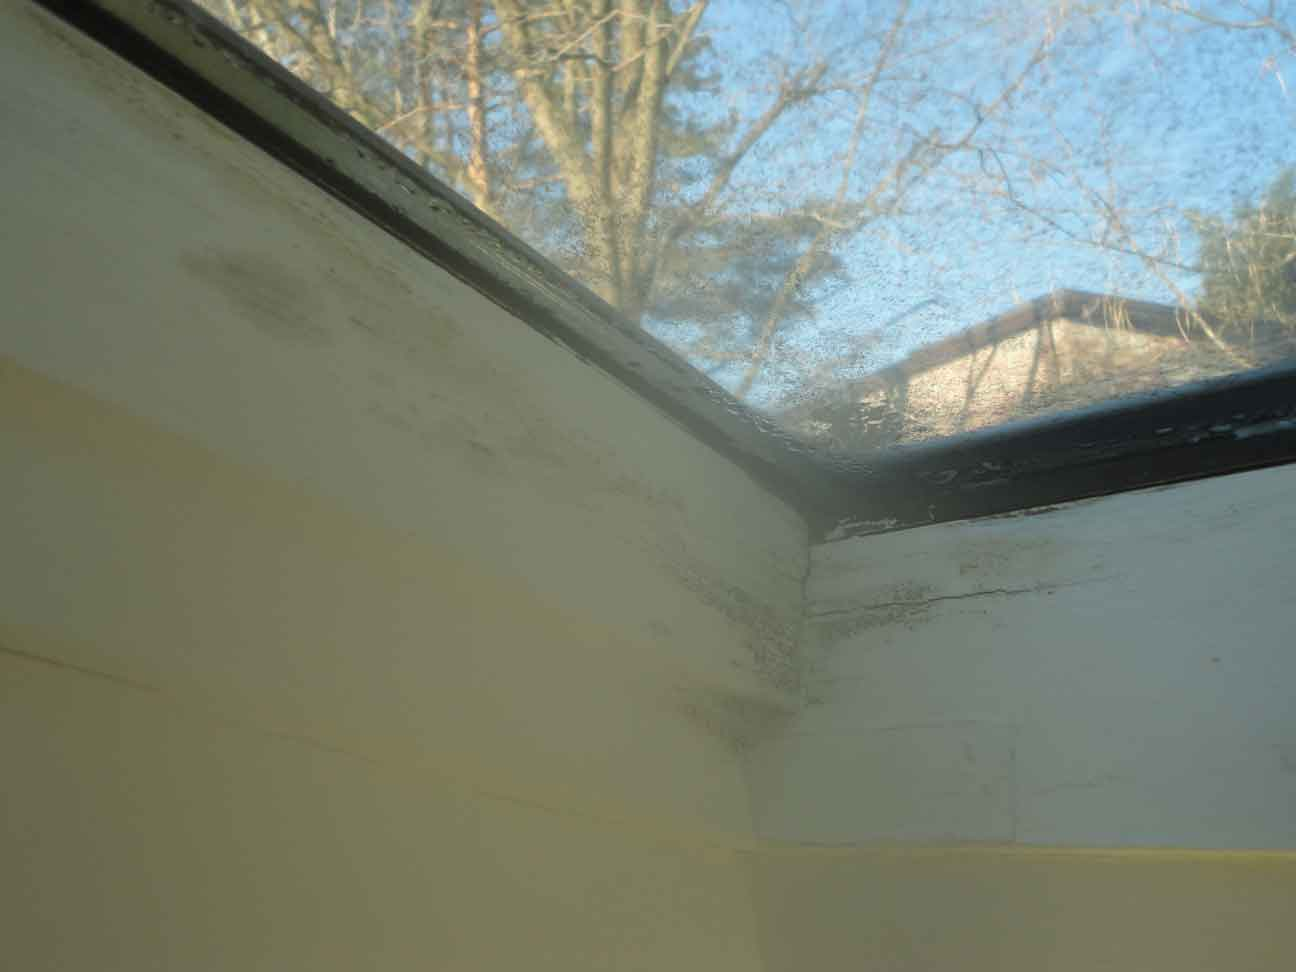 Inspection: skylight leaks and mold is found.